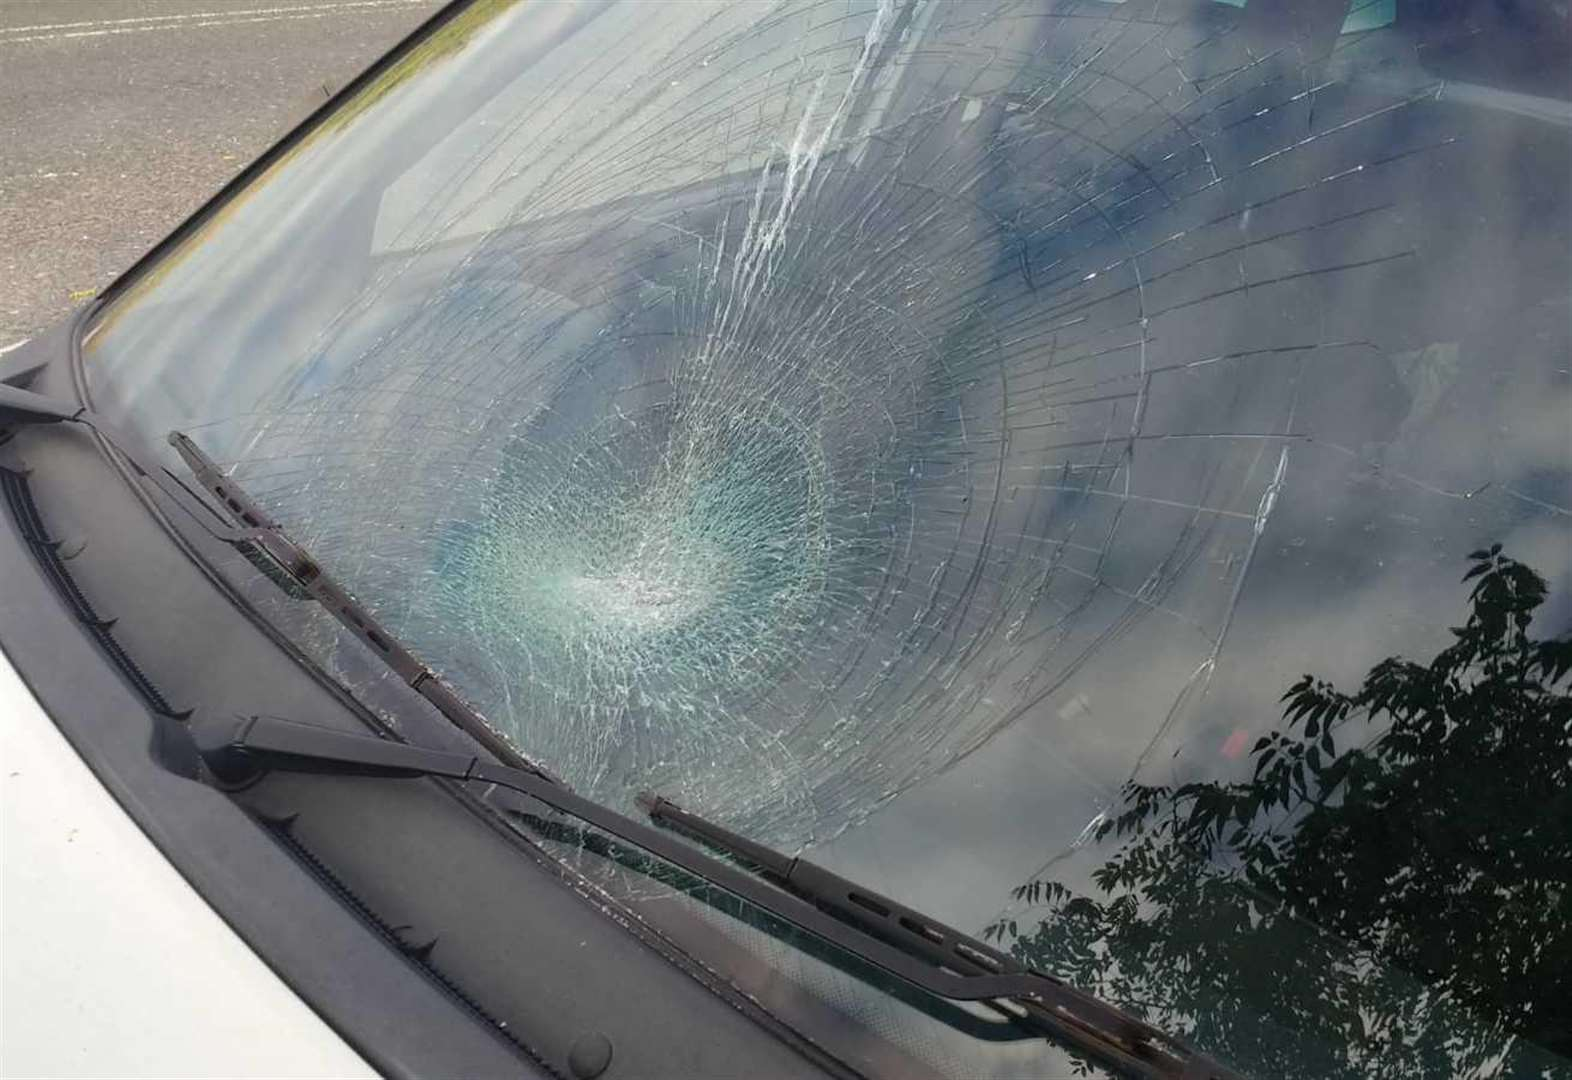 Cars damaged in vandalism attack